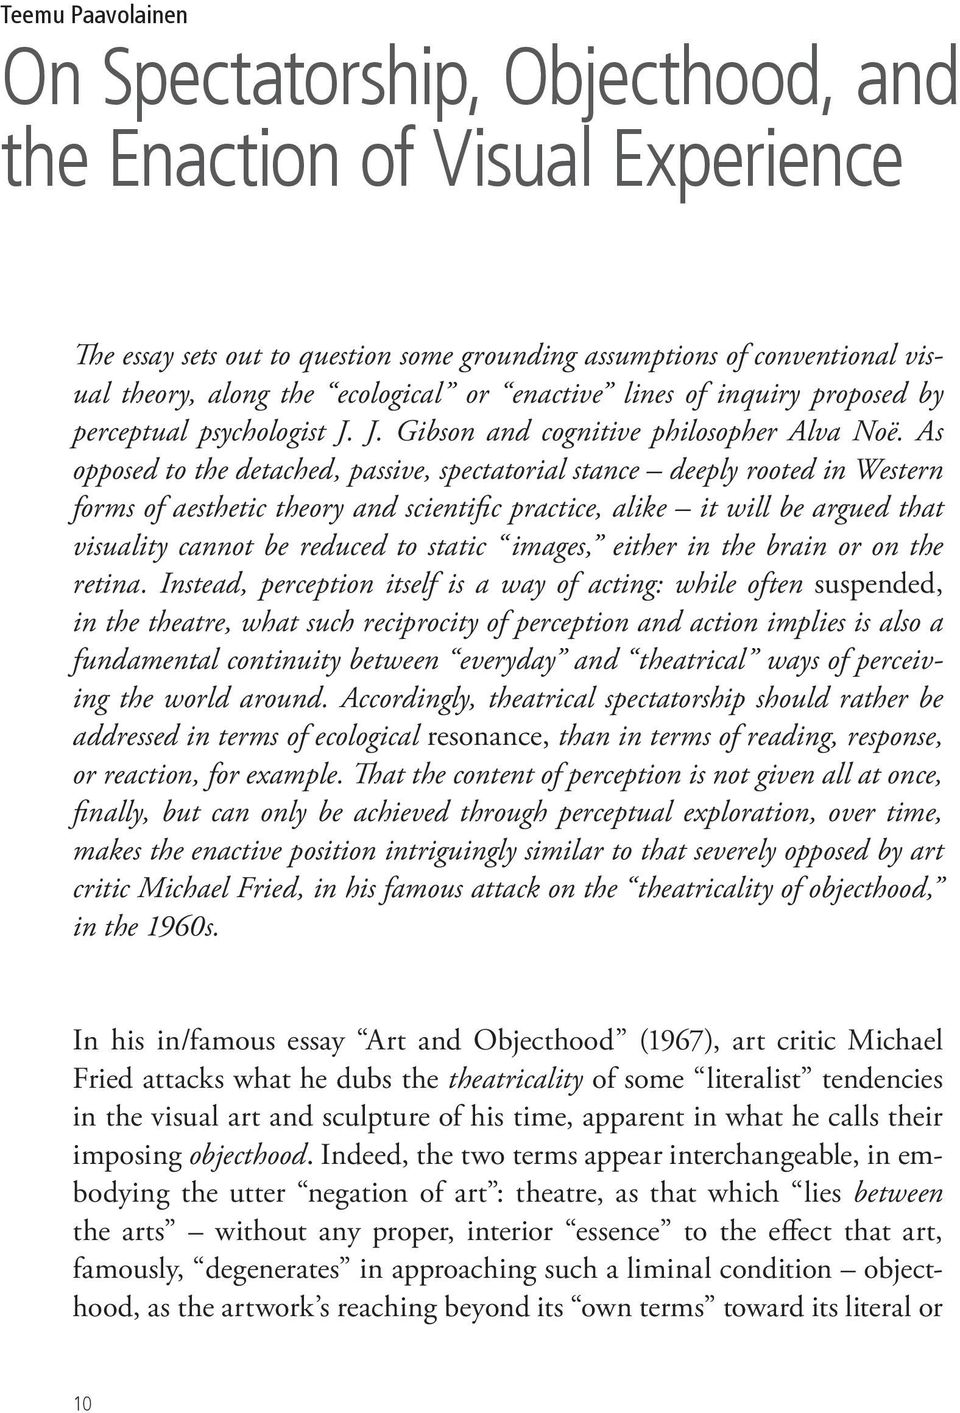 art and objecthood michael fried essay